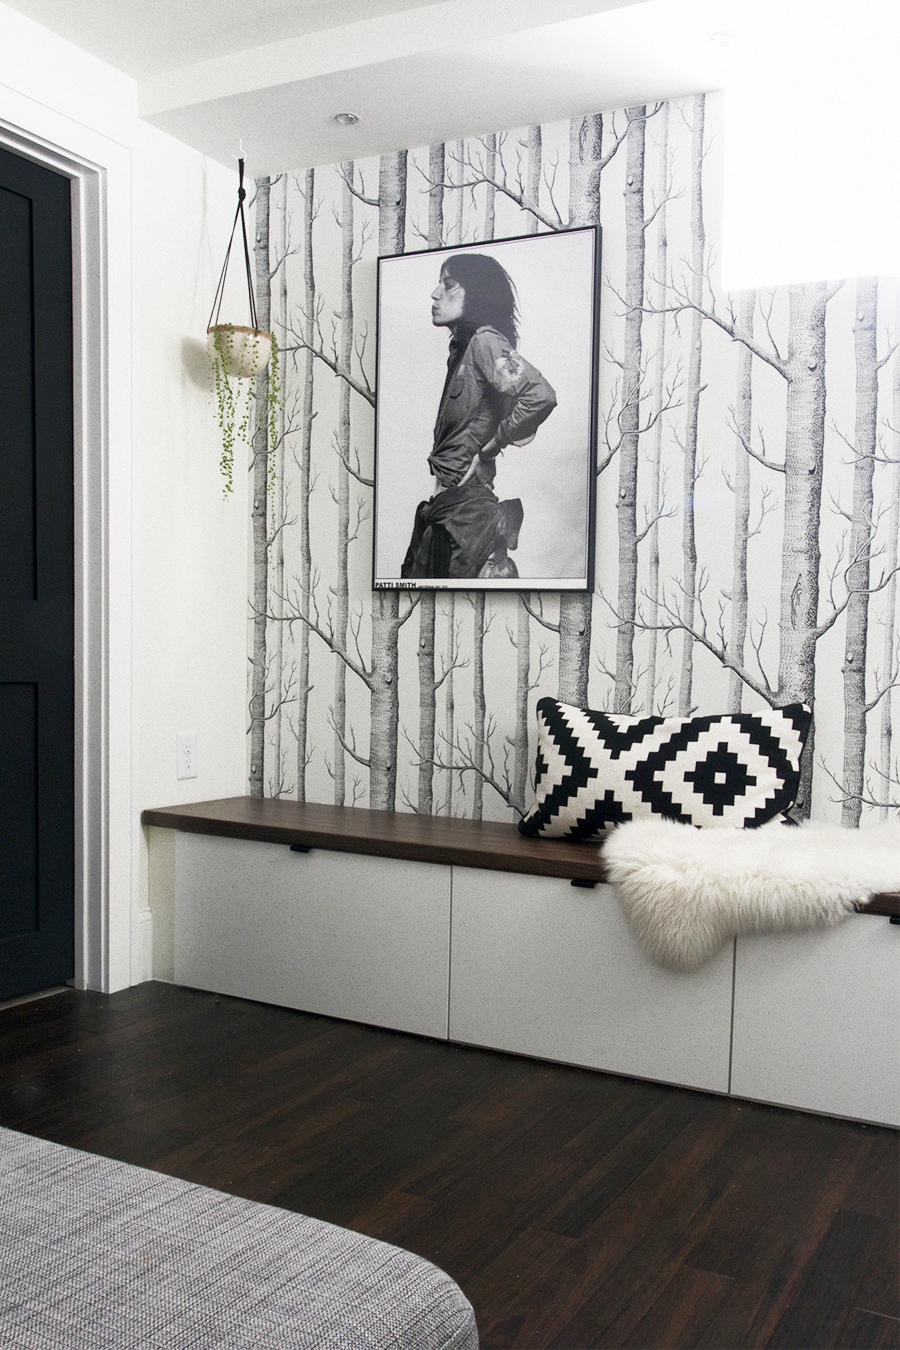 Ikea Cabinets Double as Bench Seating in this Modern Basement Remodel